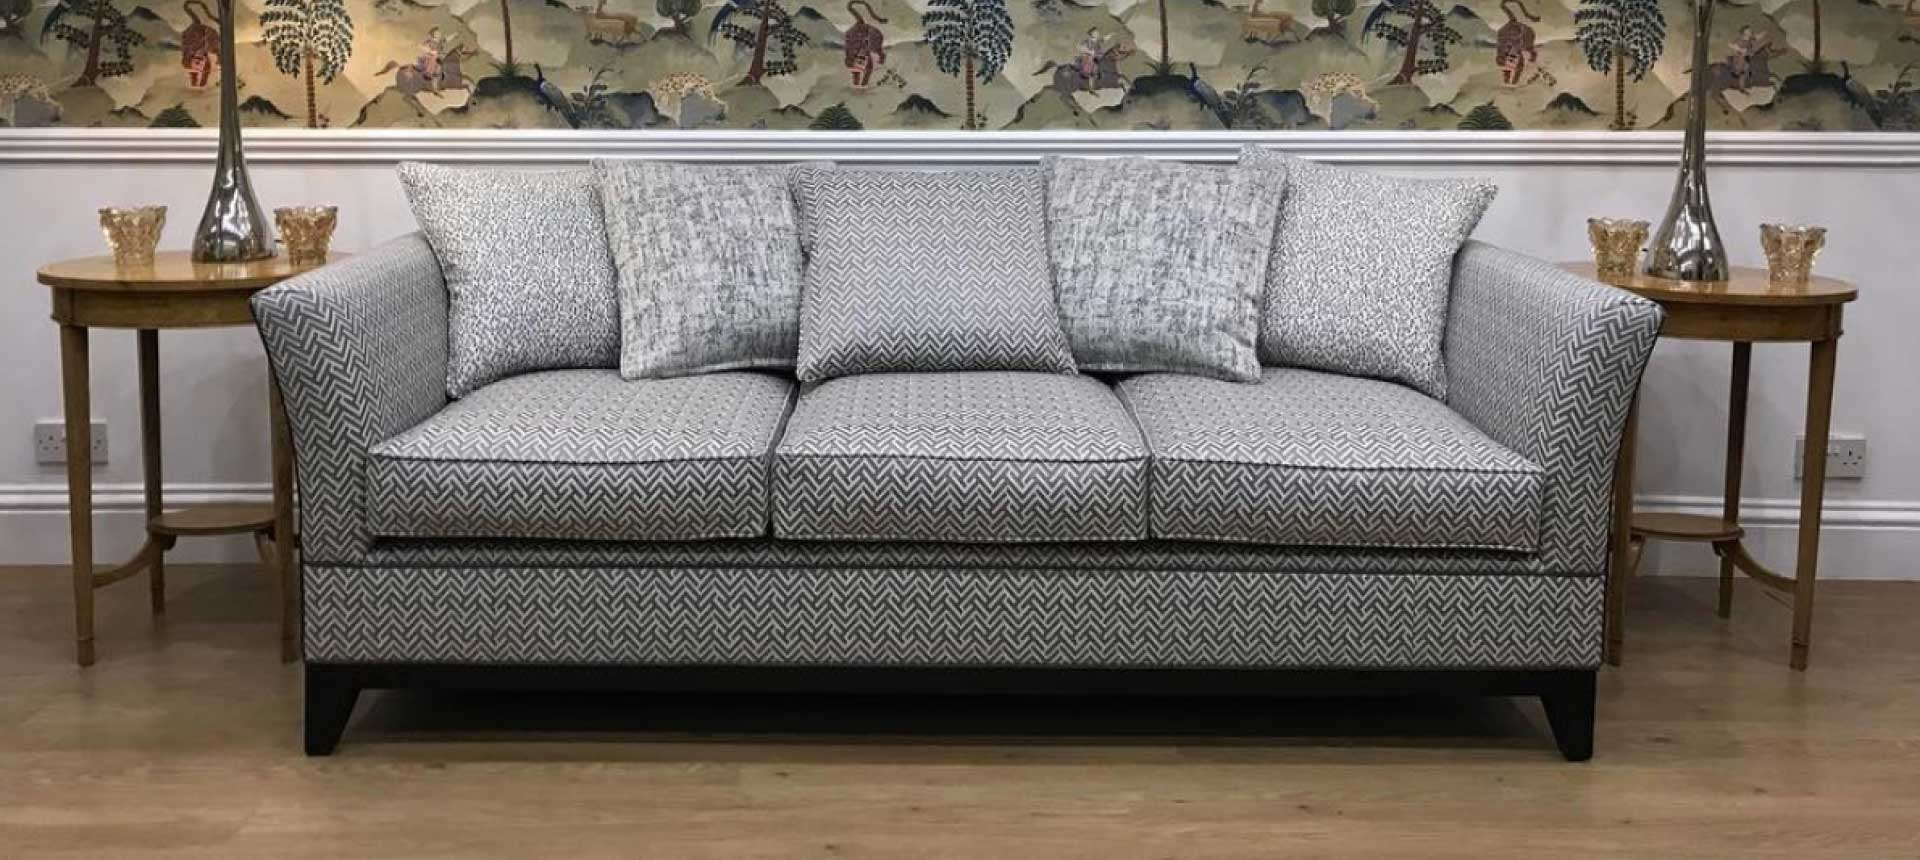 Artistic Upholstrery furniture collection